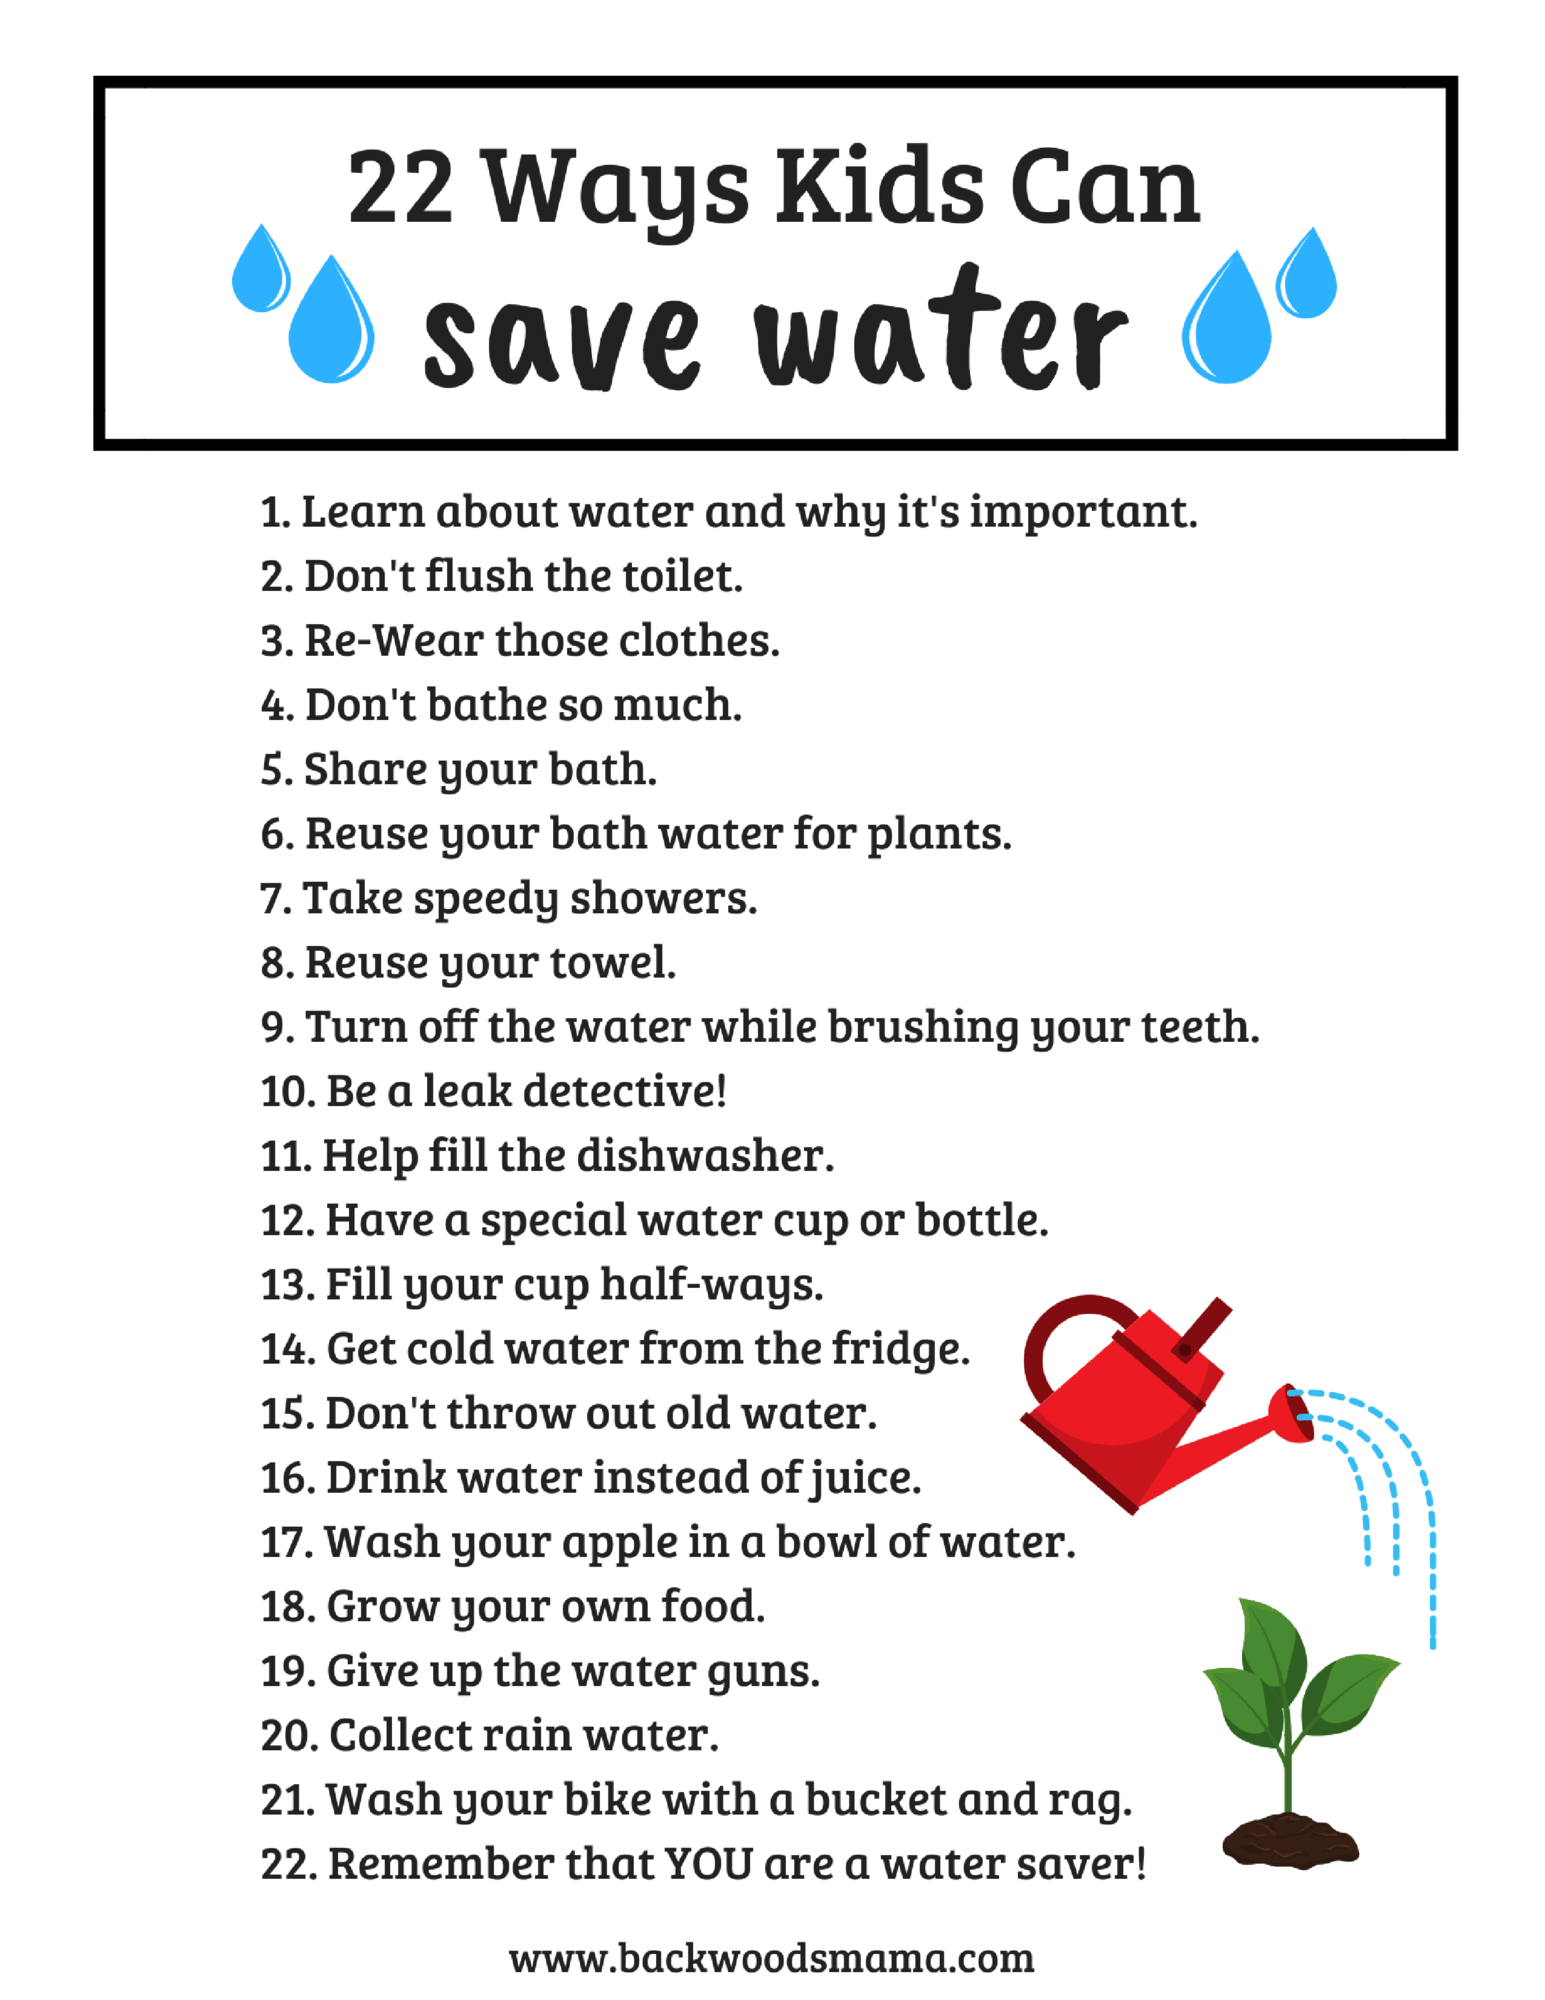 Even If You Are A Kid Can Save Water Just Like Grown Ups